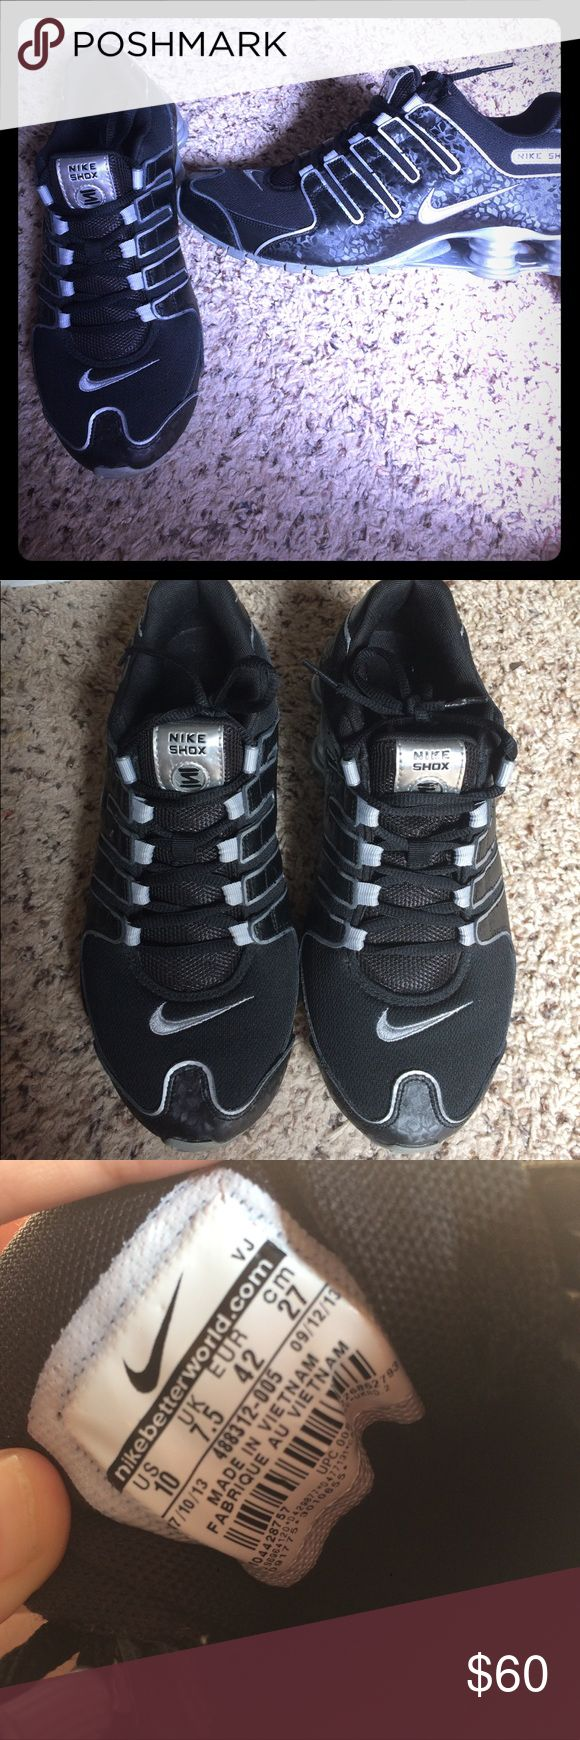 Size 10 Nike Shox Barely worn black Nike Shox with silver accents and cool holographic design on the sides. In great condition. Nike Shoes Athletic Shoes